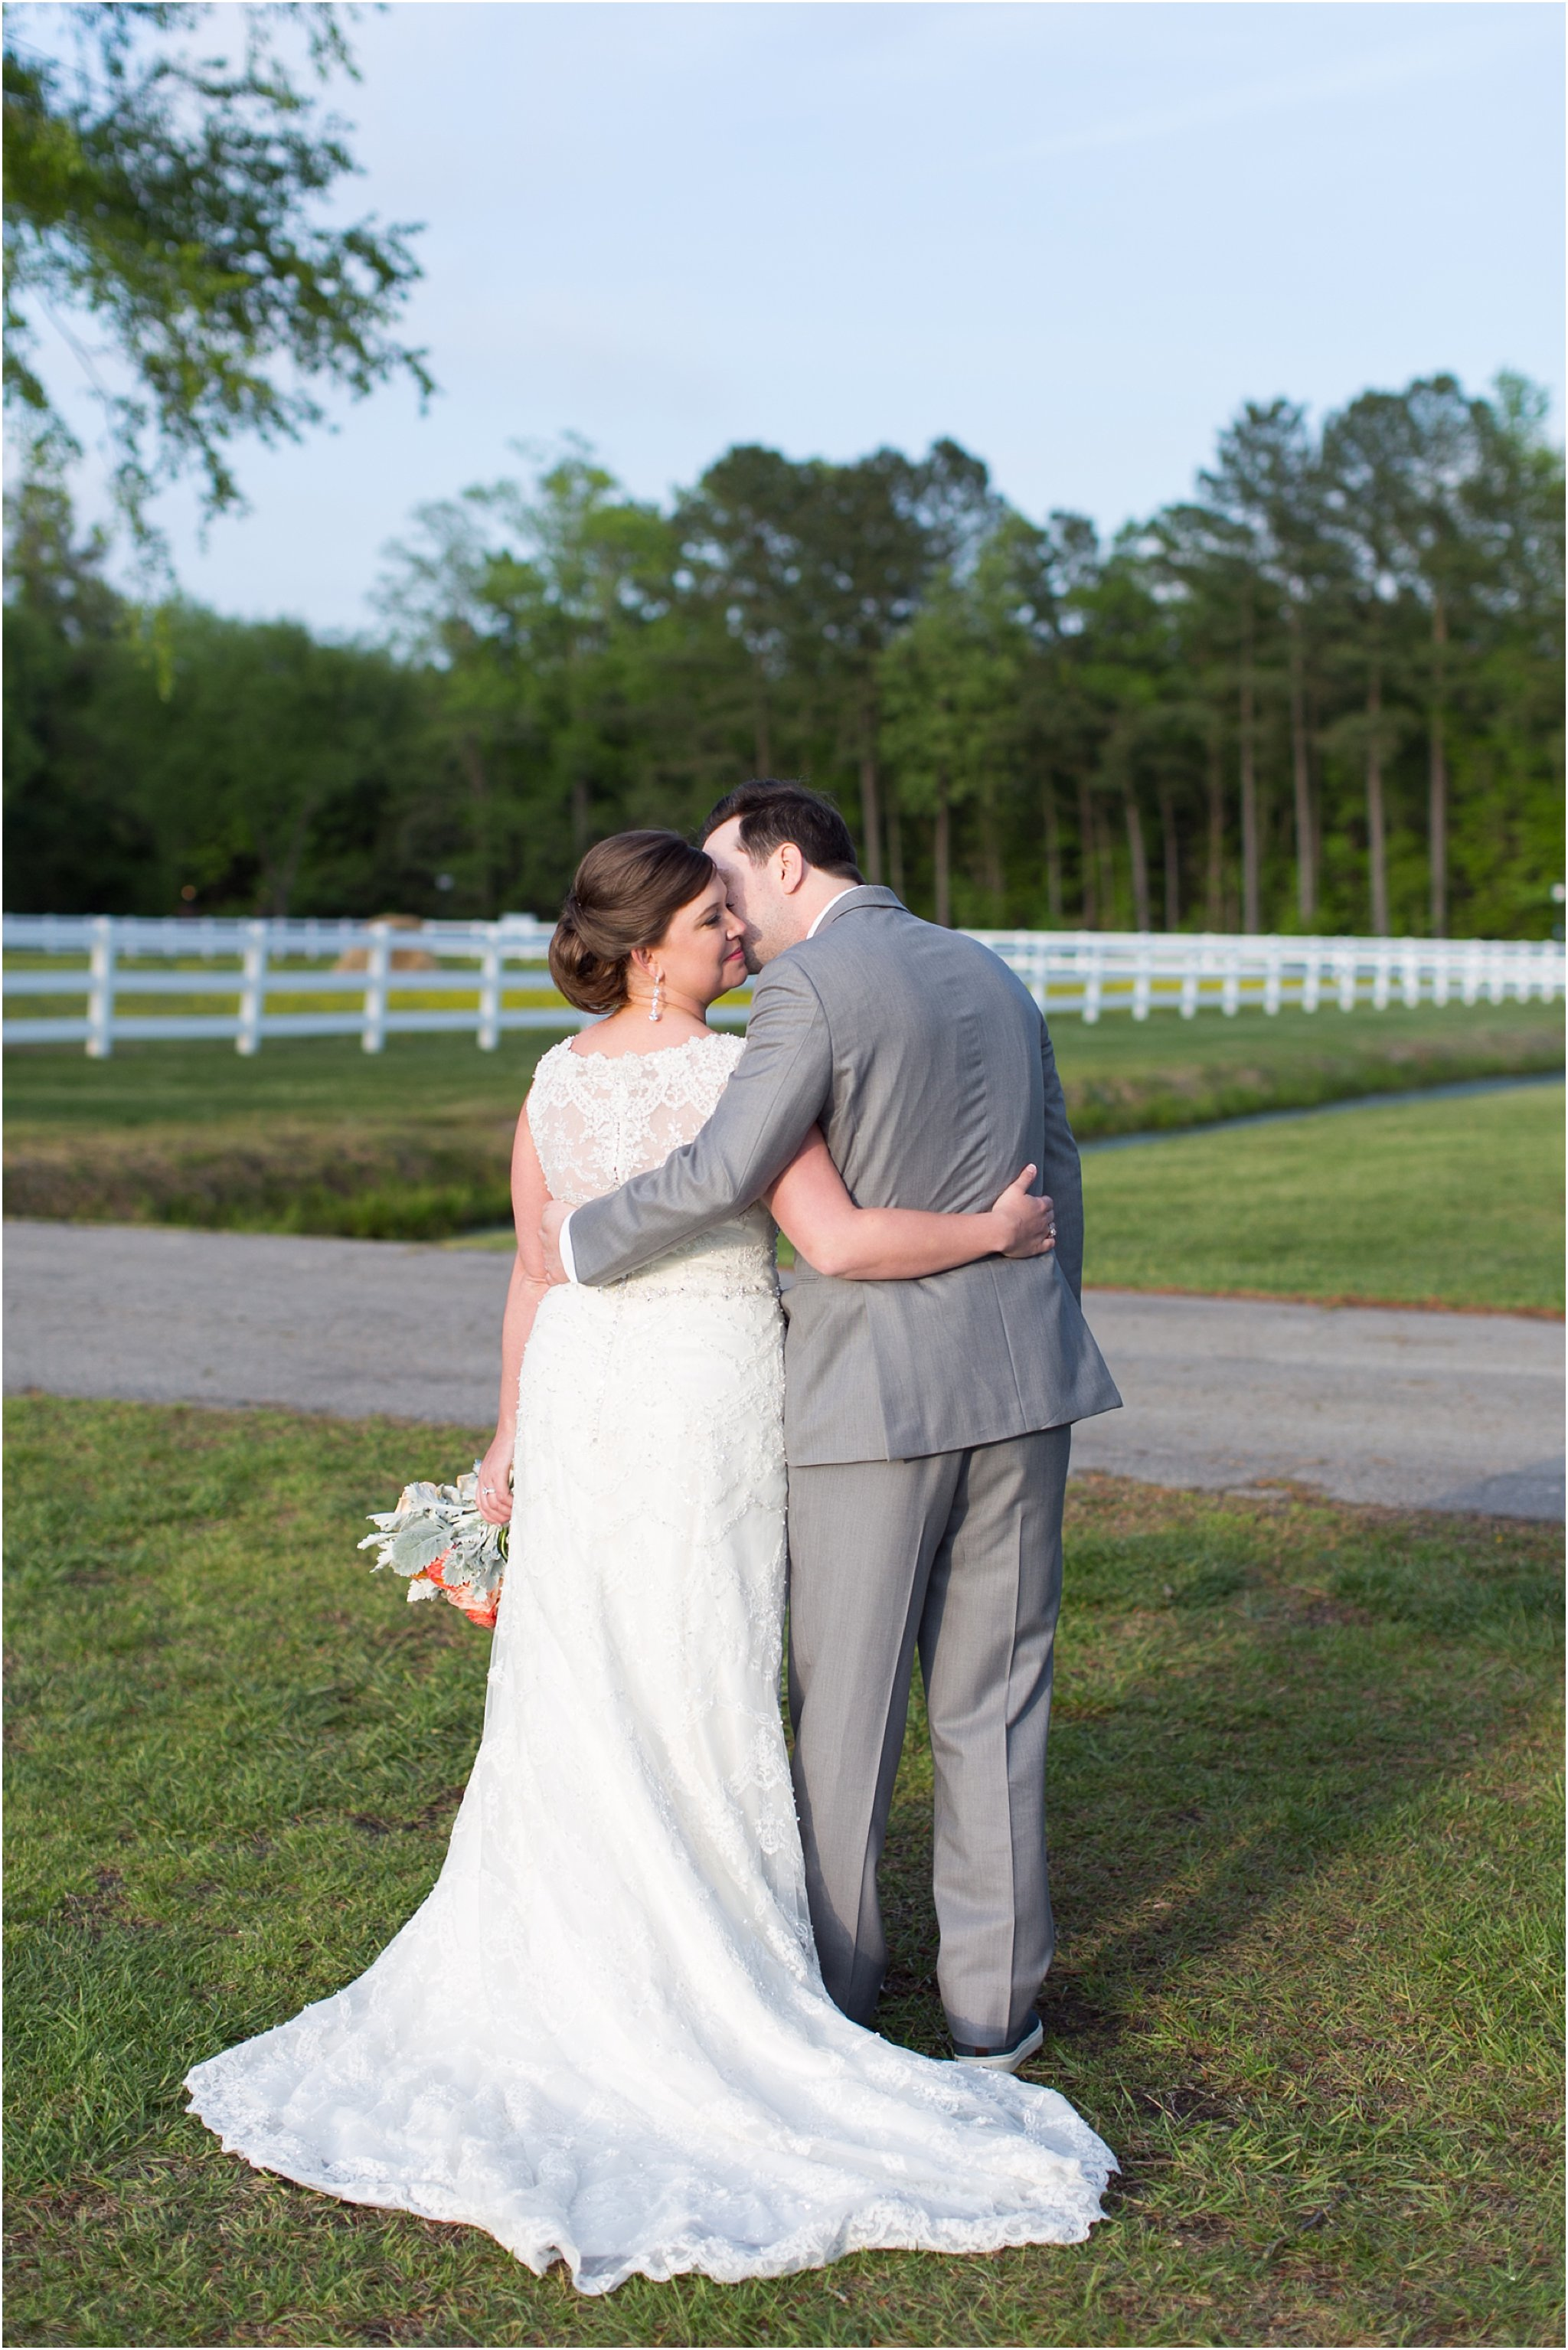 jessica_ryan_photography_holly_ridge_manor_wedding_roost_flowers_jamie_leigh_events_dhalia_edwards_candid_vibrant_wedding_colors_1334